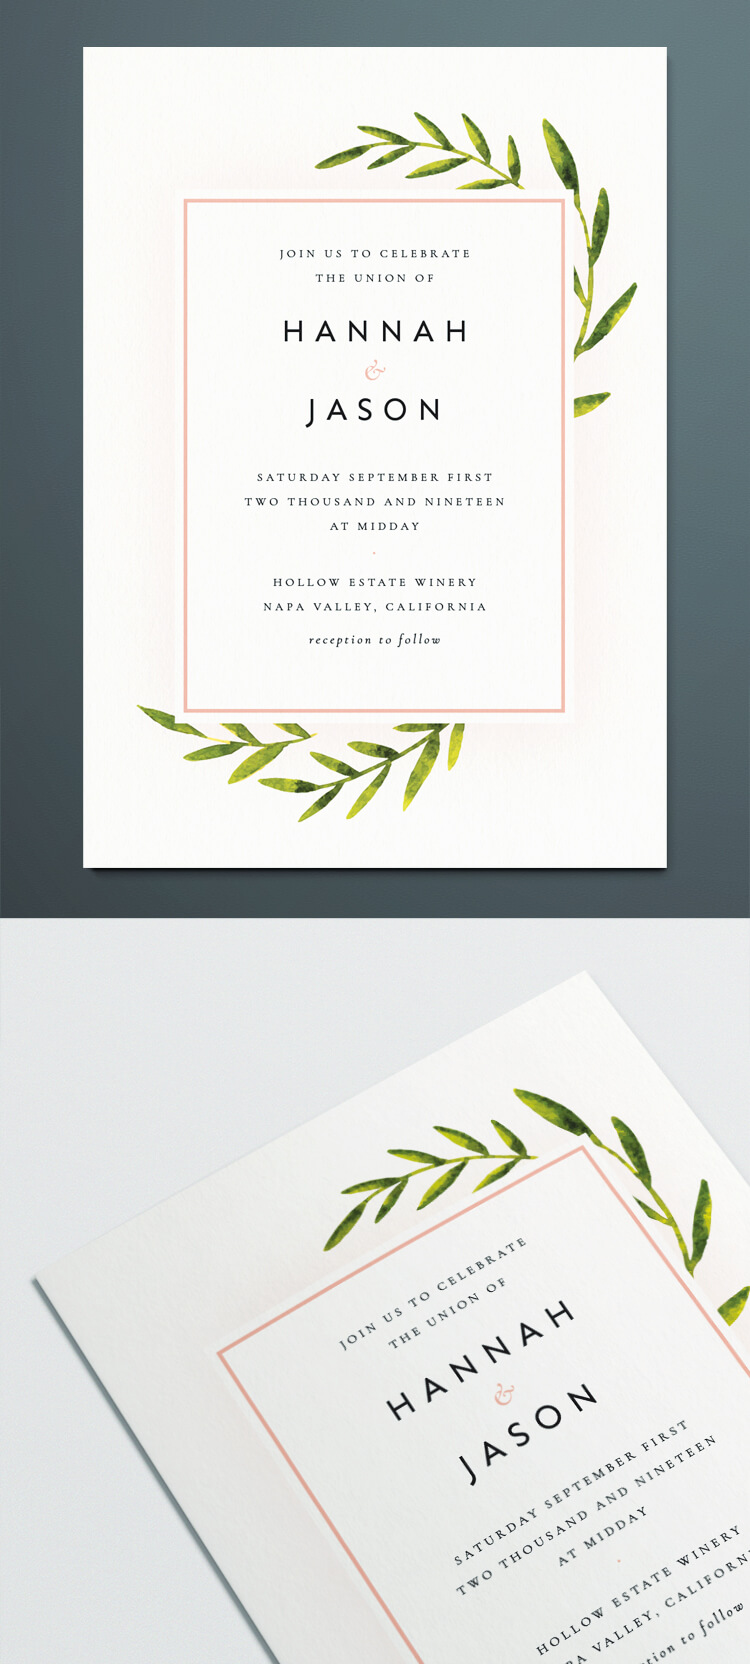 A chalkboard invitation template is usually a public invitation method, rather than an indi. Botanical Wedding Invitation Template For Indesign Free Download